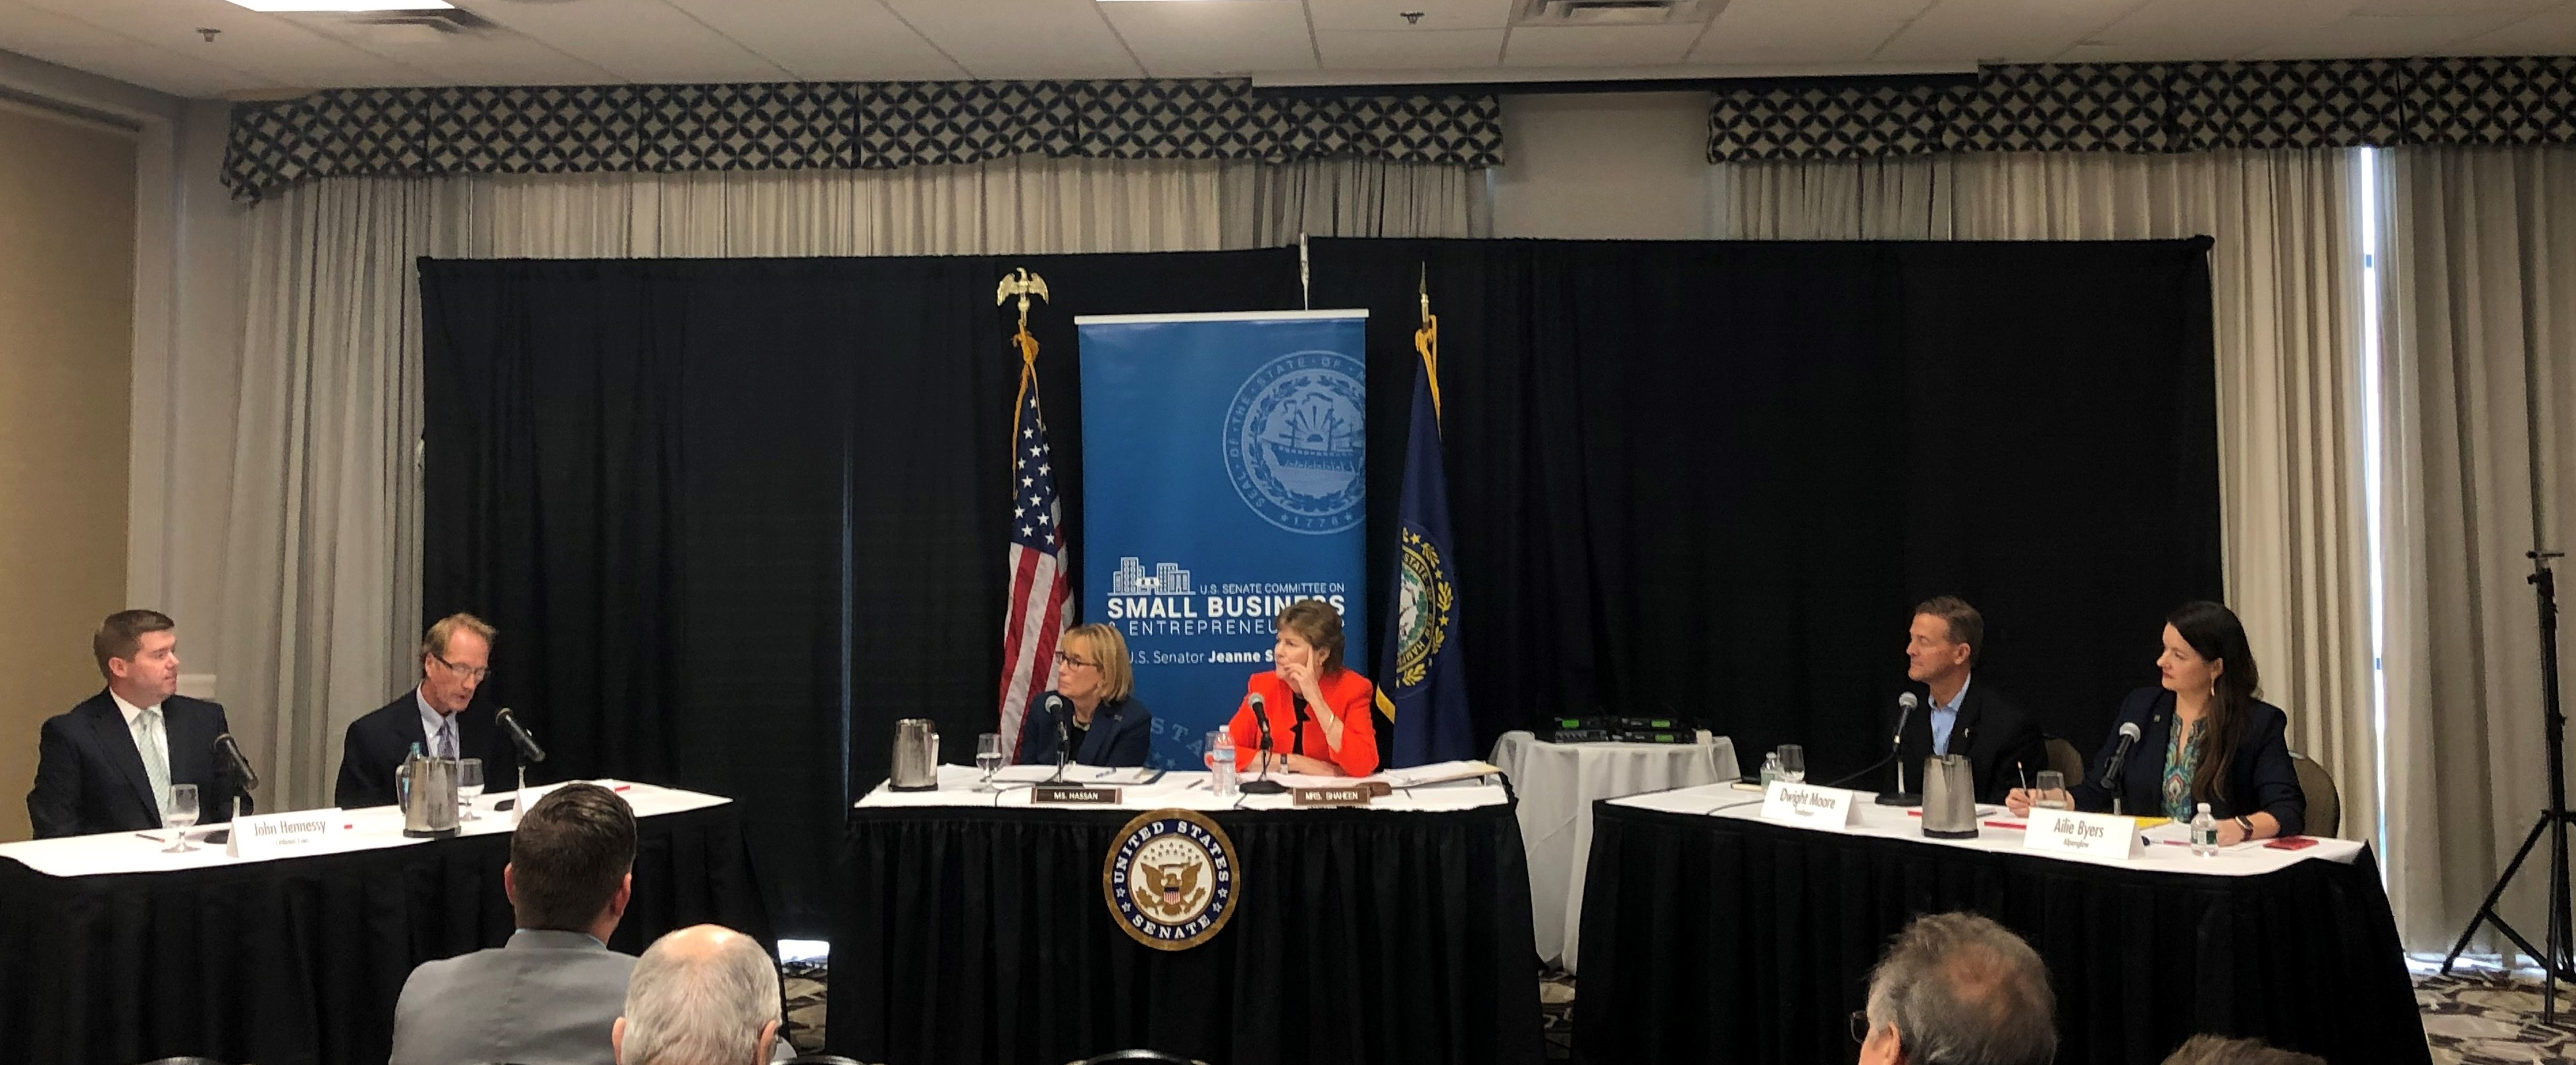 Senators Shaheen and Hassan hear from Granite State small business owners about the impact of the internet sales tax collection requirement during a Small Business and Entrepreneurship Committee field hearing in Concord.